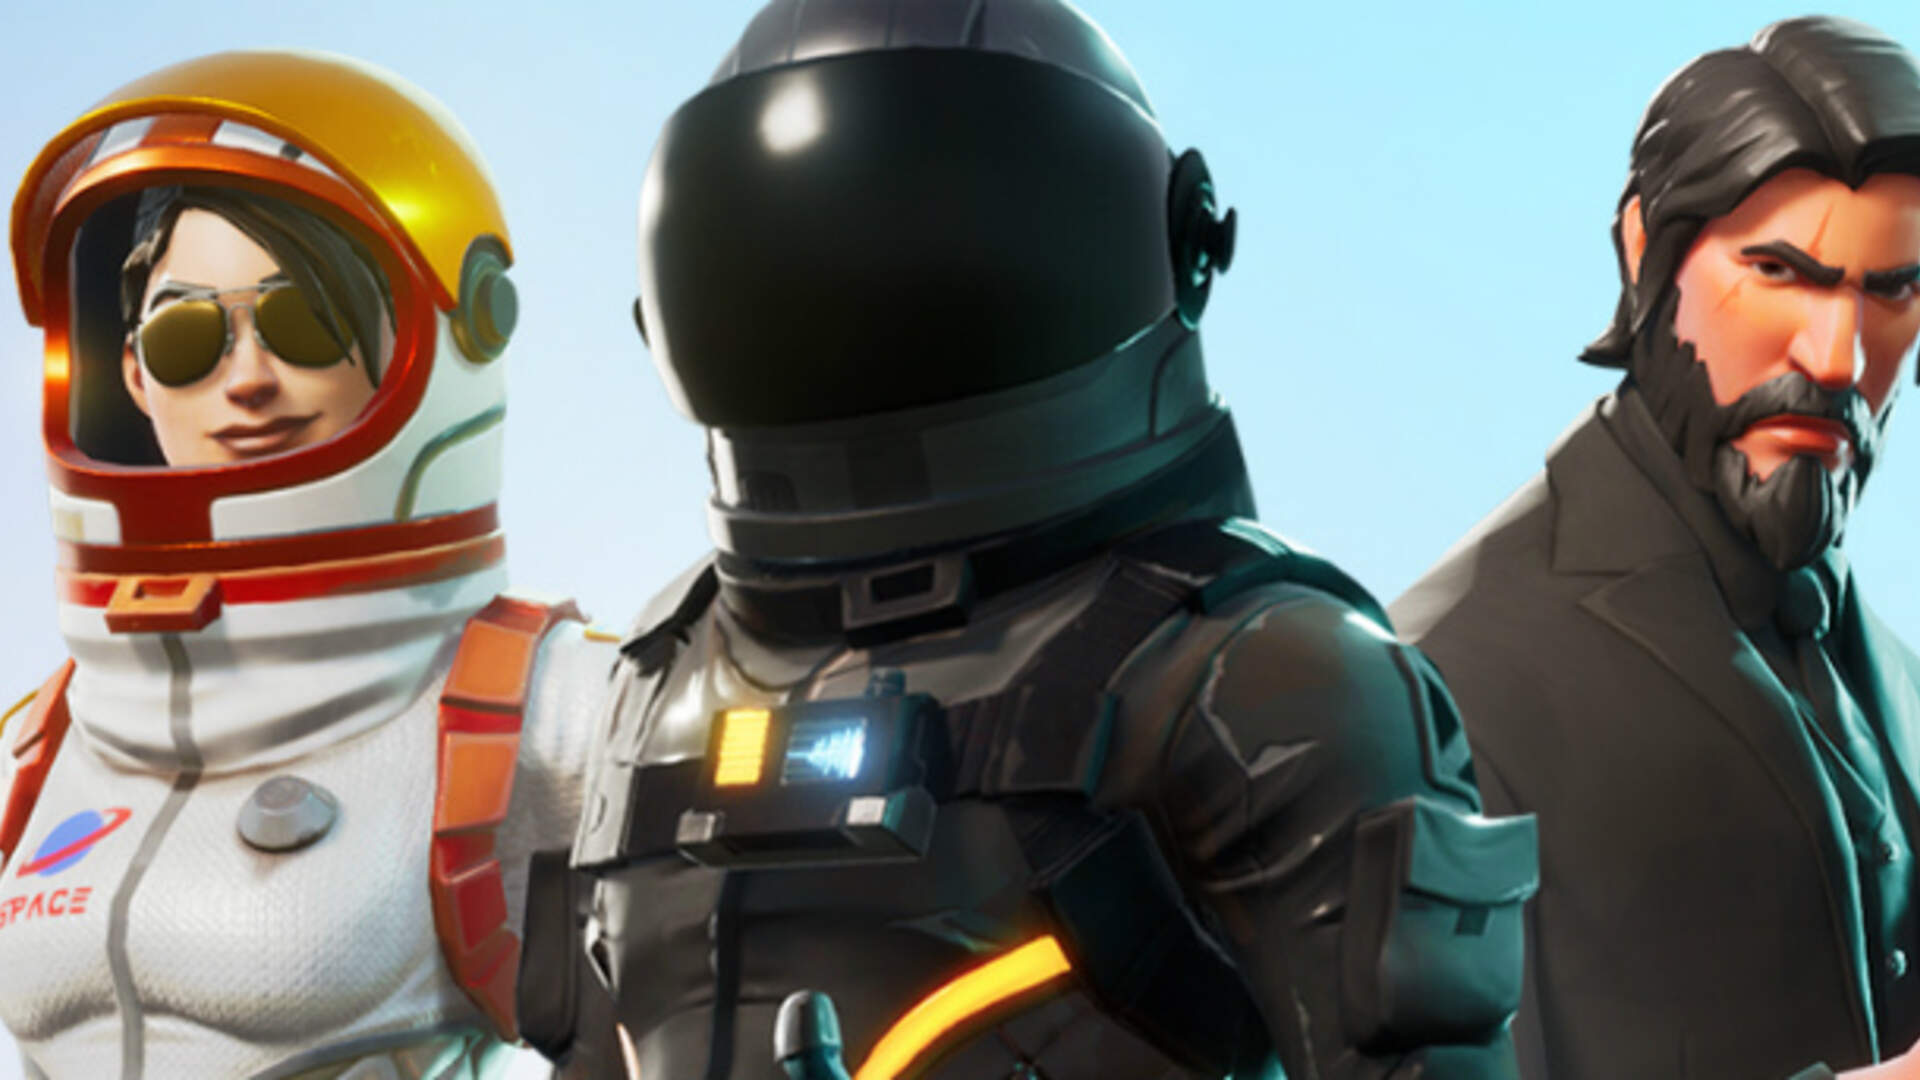 Fortnite's $100 Million Esports Prize Pool is Bigger Than the 2017 Prizes for Dota 2, CS:GO, LoL Combined